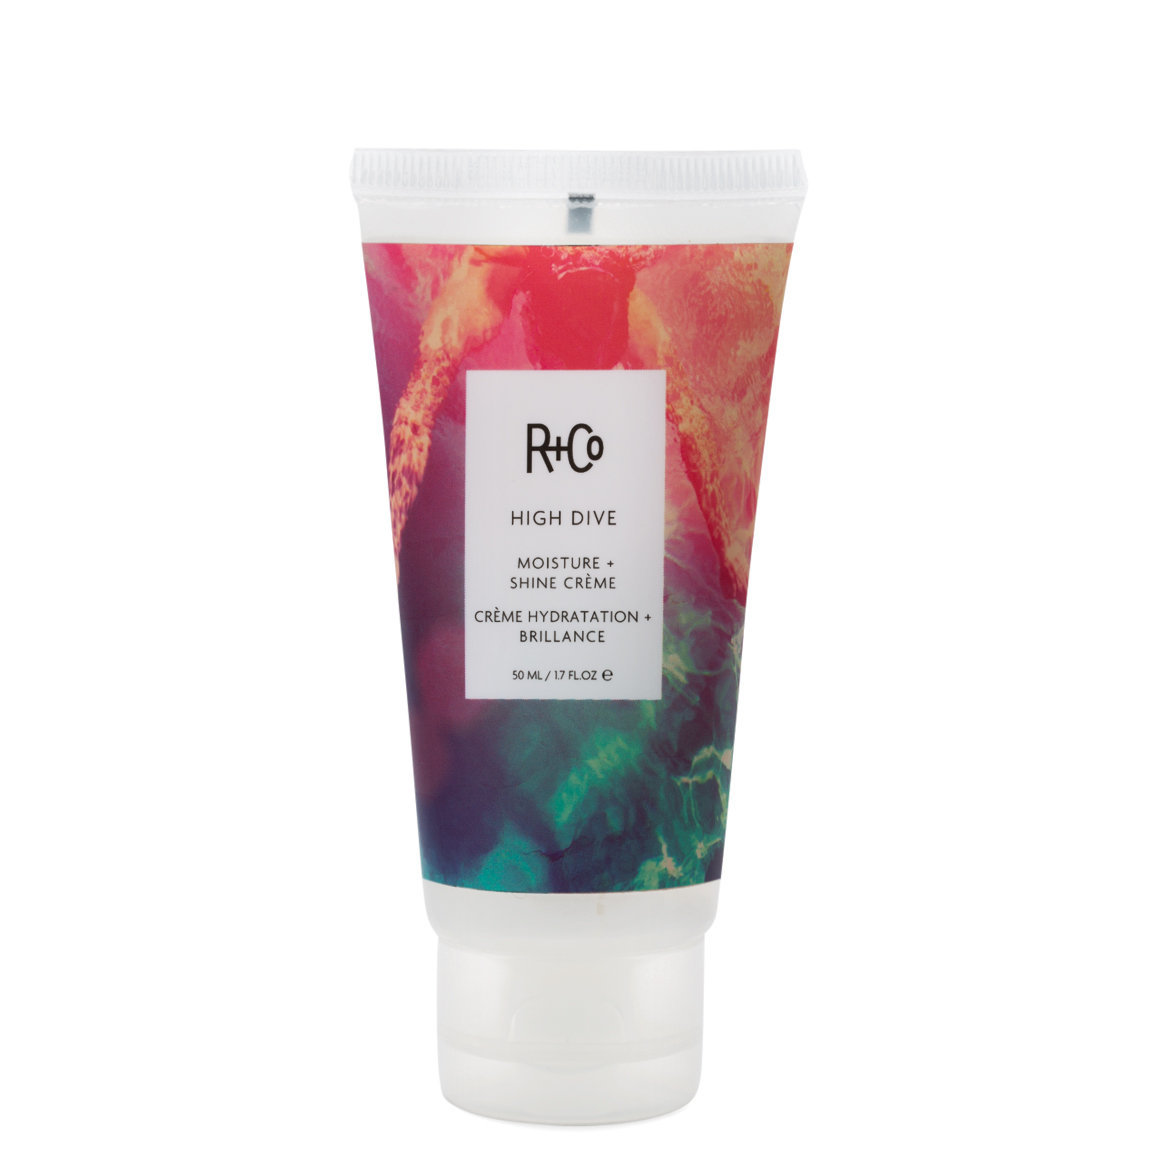 R+Co High Dive Moisture + Shine Cream 1.7 oz product smear.